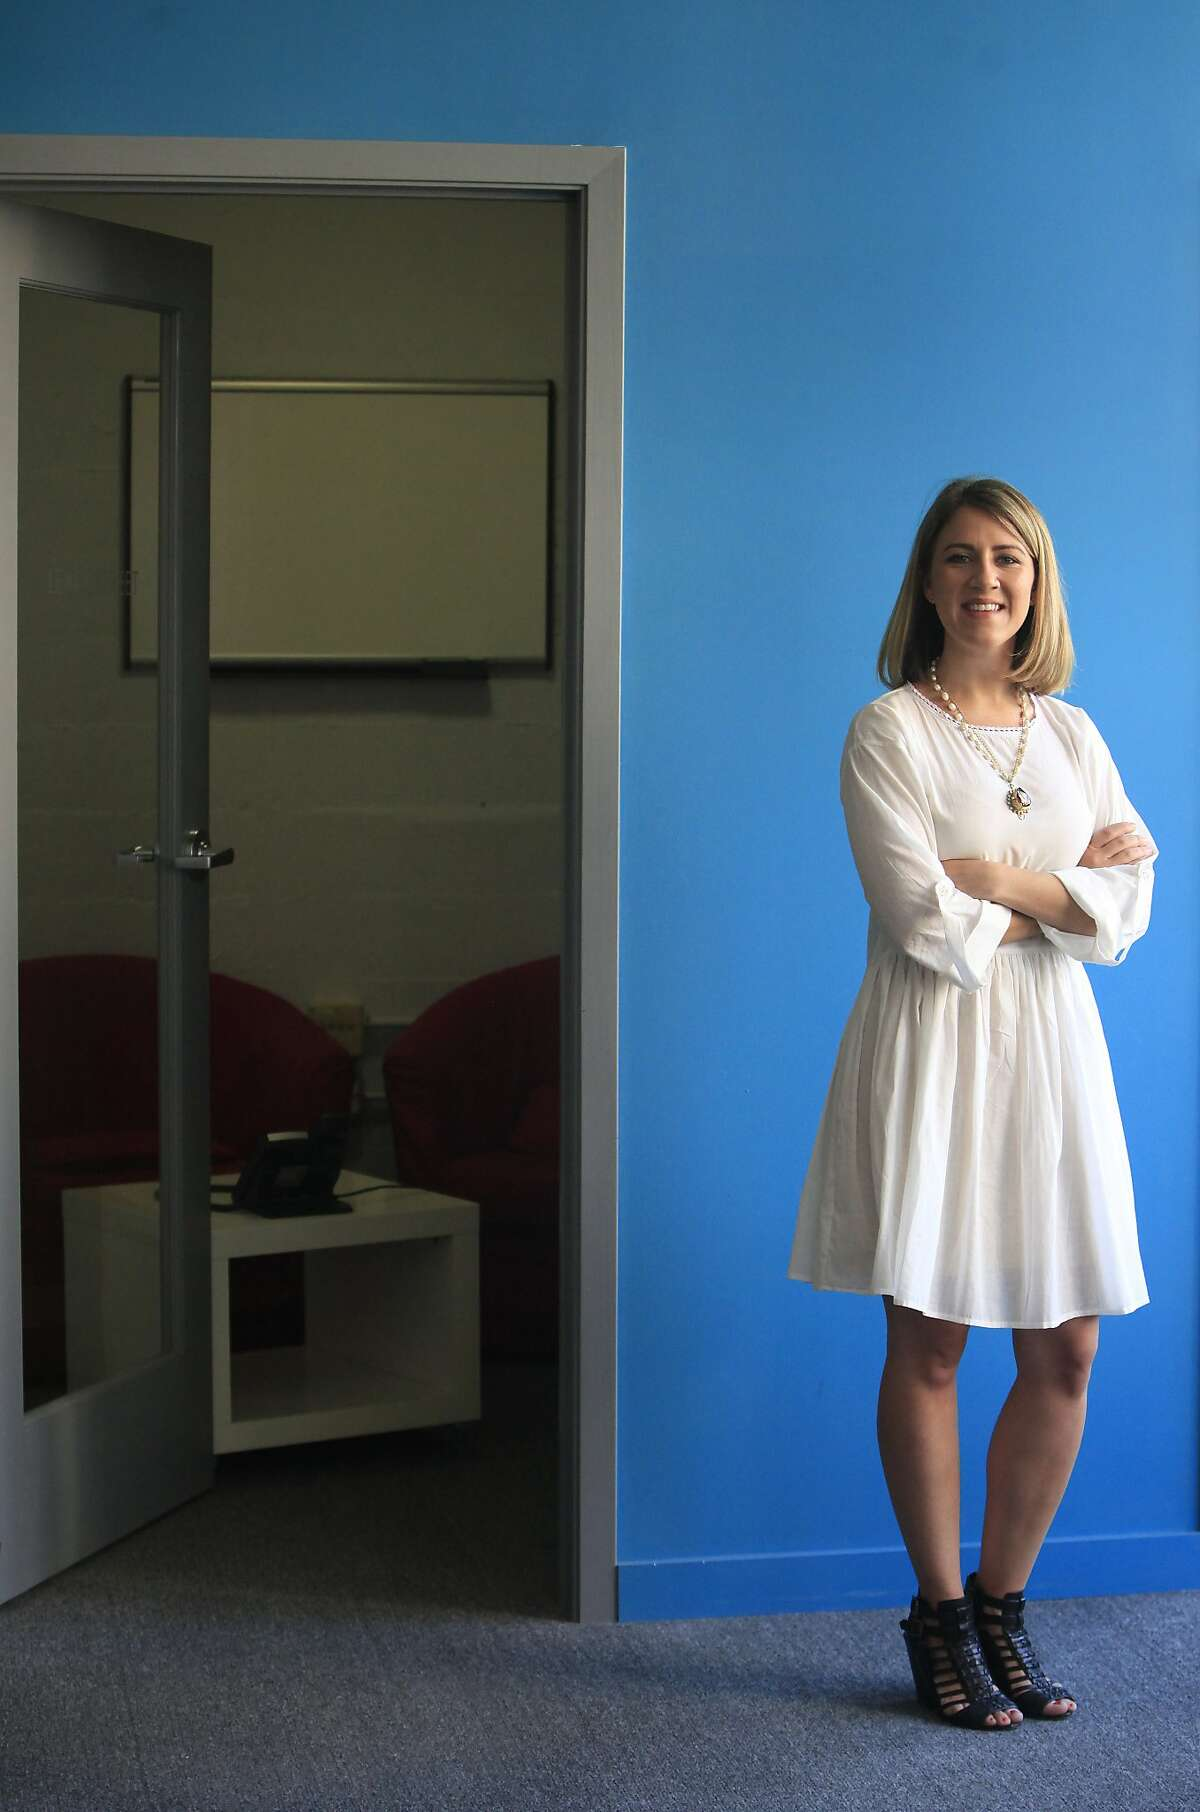 Clara Brenner, CEO and co-founder Tumml, stands in the Tumml office on Monday, June 9, 2014 in San Francisco, Calif.